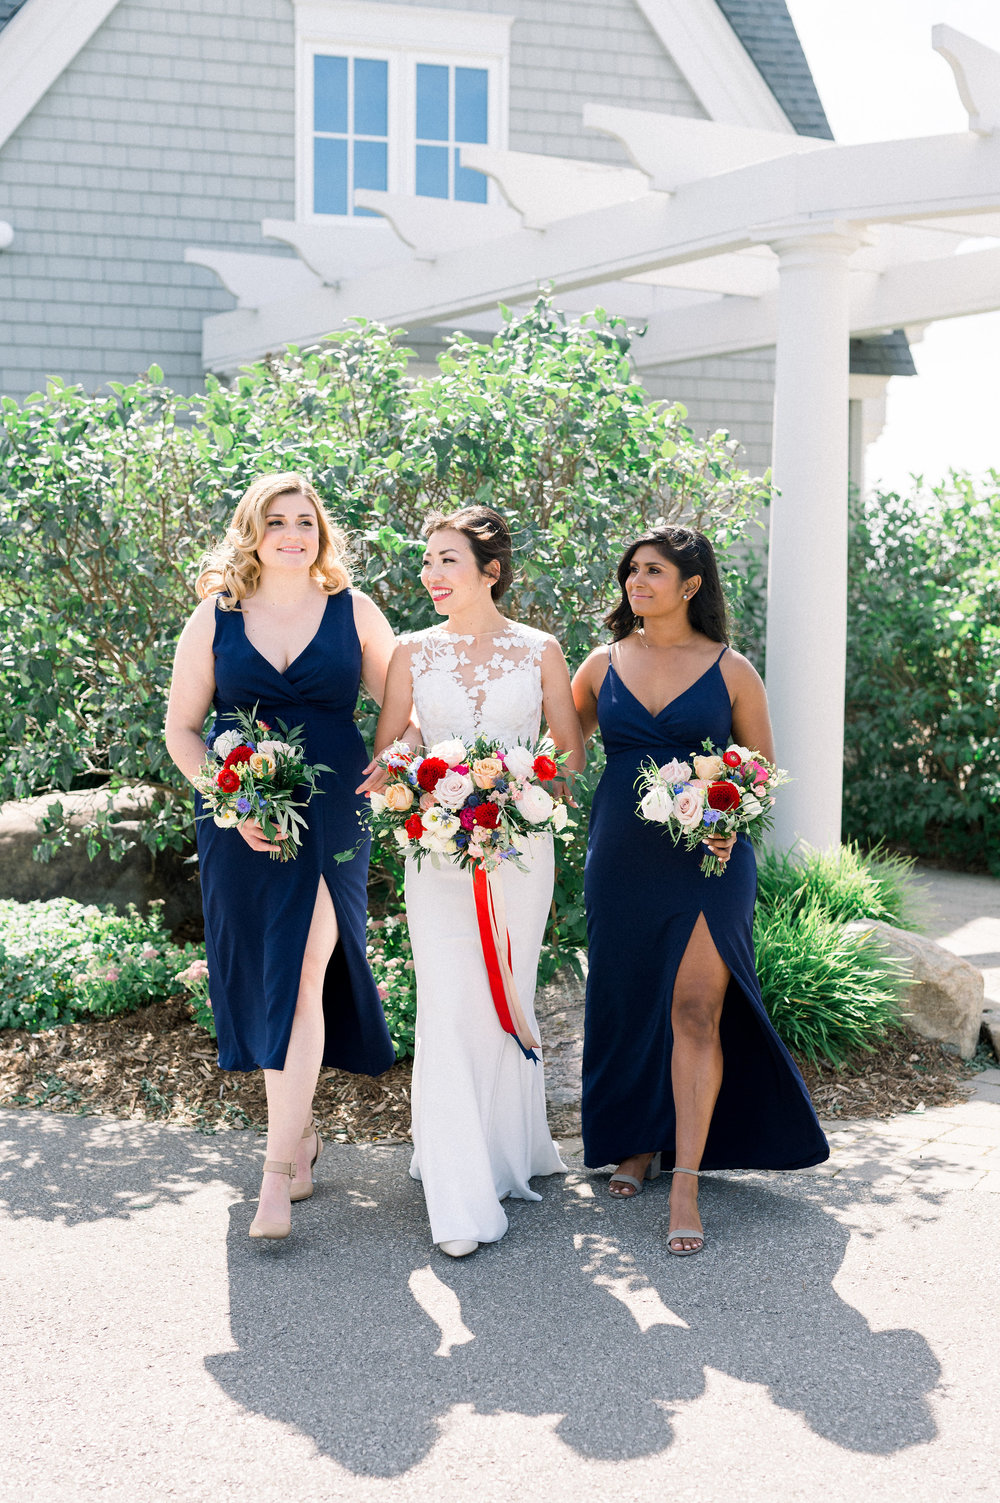 Photo courtesy of Whitney Heard 2018. Bride and bridal party's makeup by Maya Goldenberg, all hair by Shanna Layton for Maya Goldenberg, Eco-Beauty Professional. Flowers by Tina from Living Fresh.